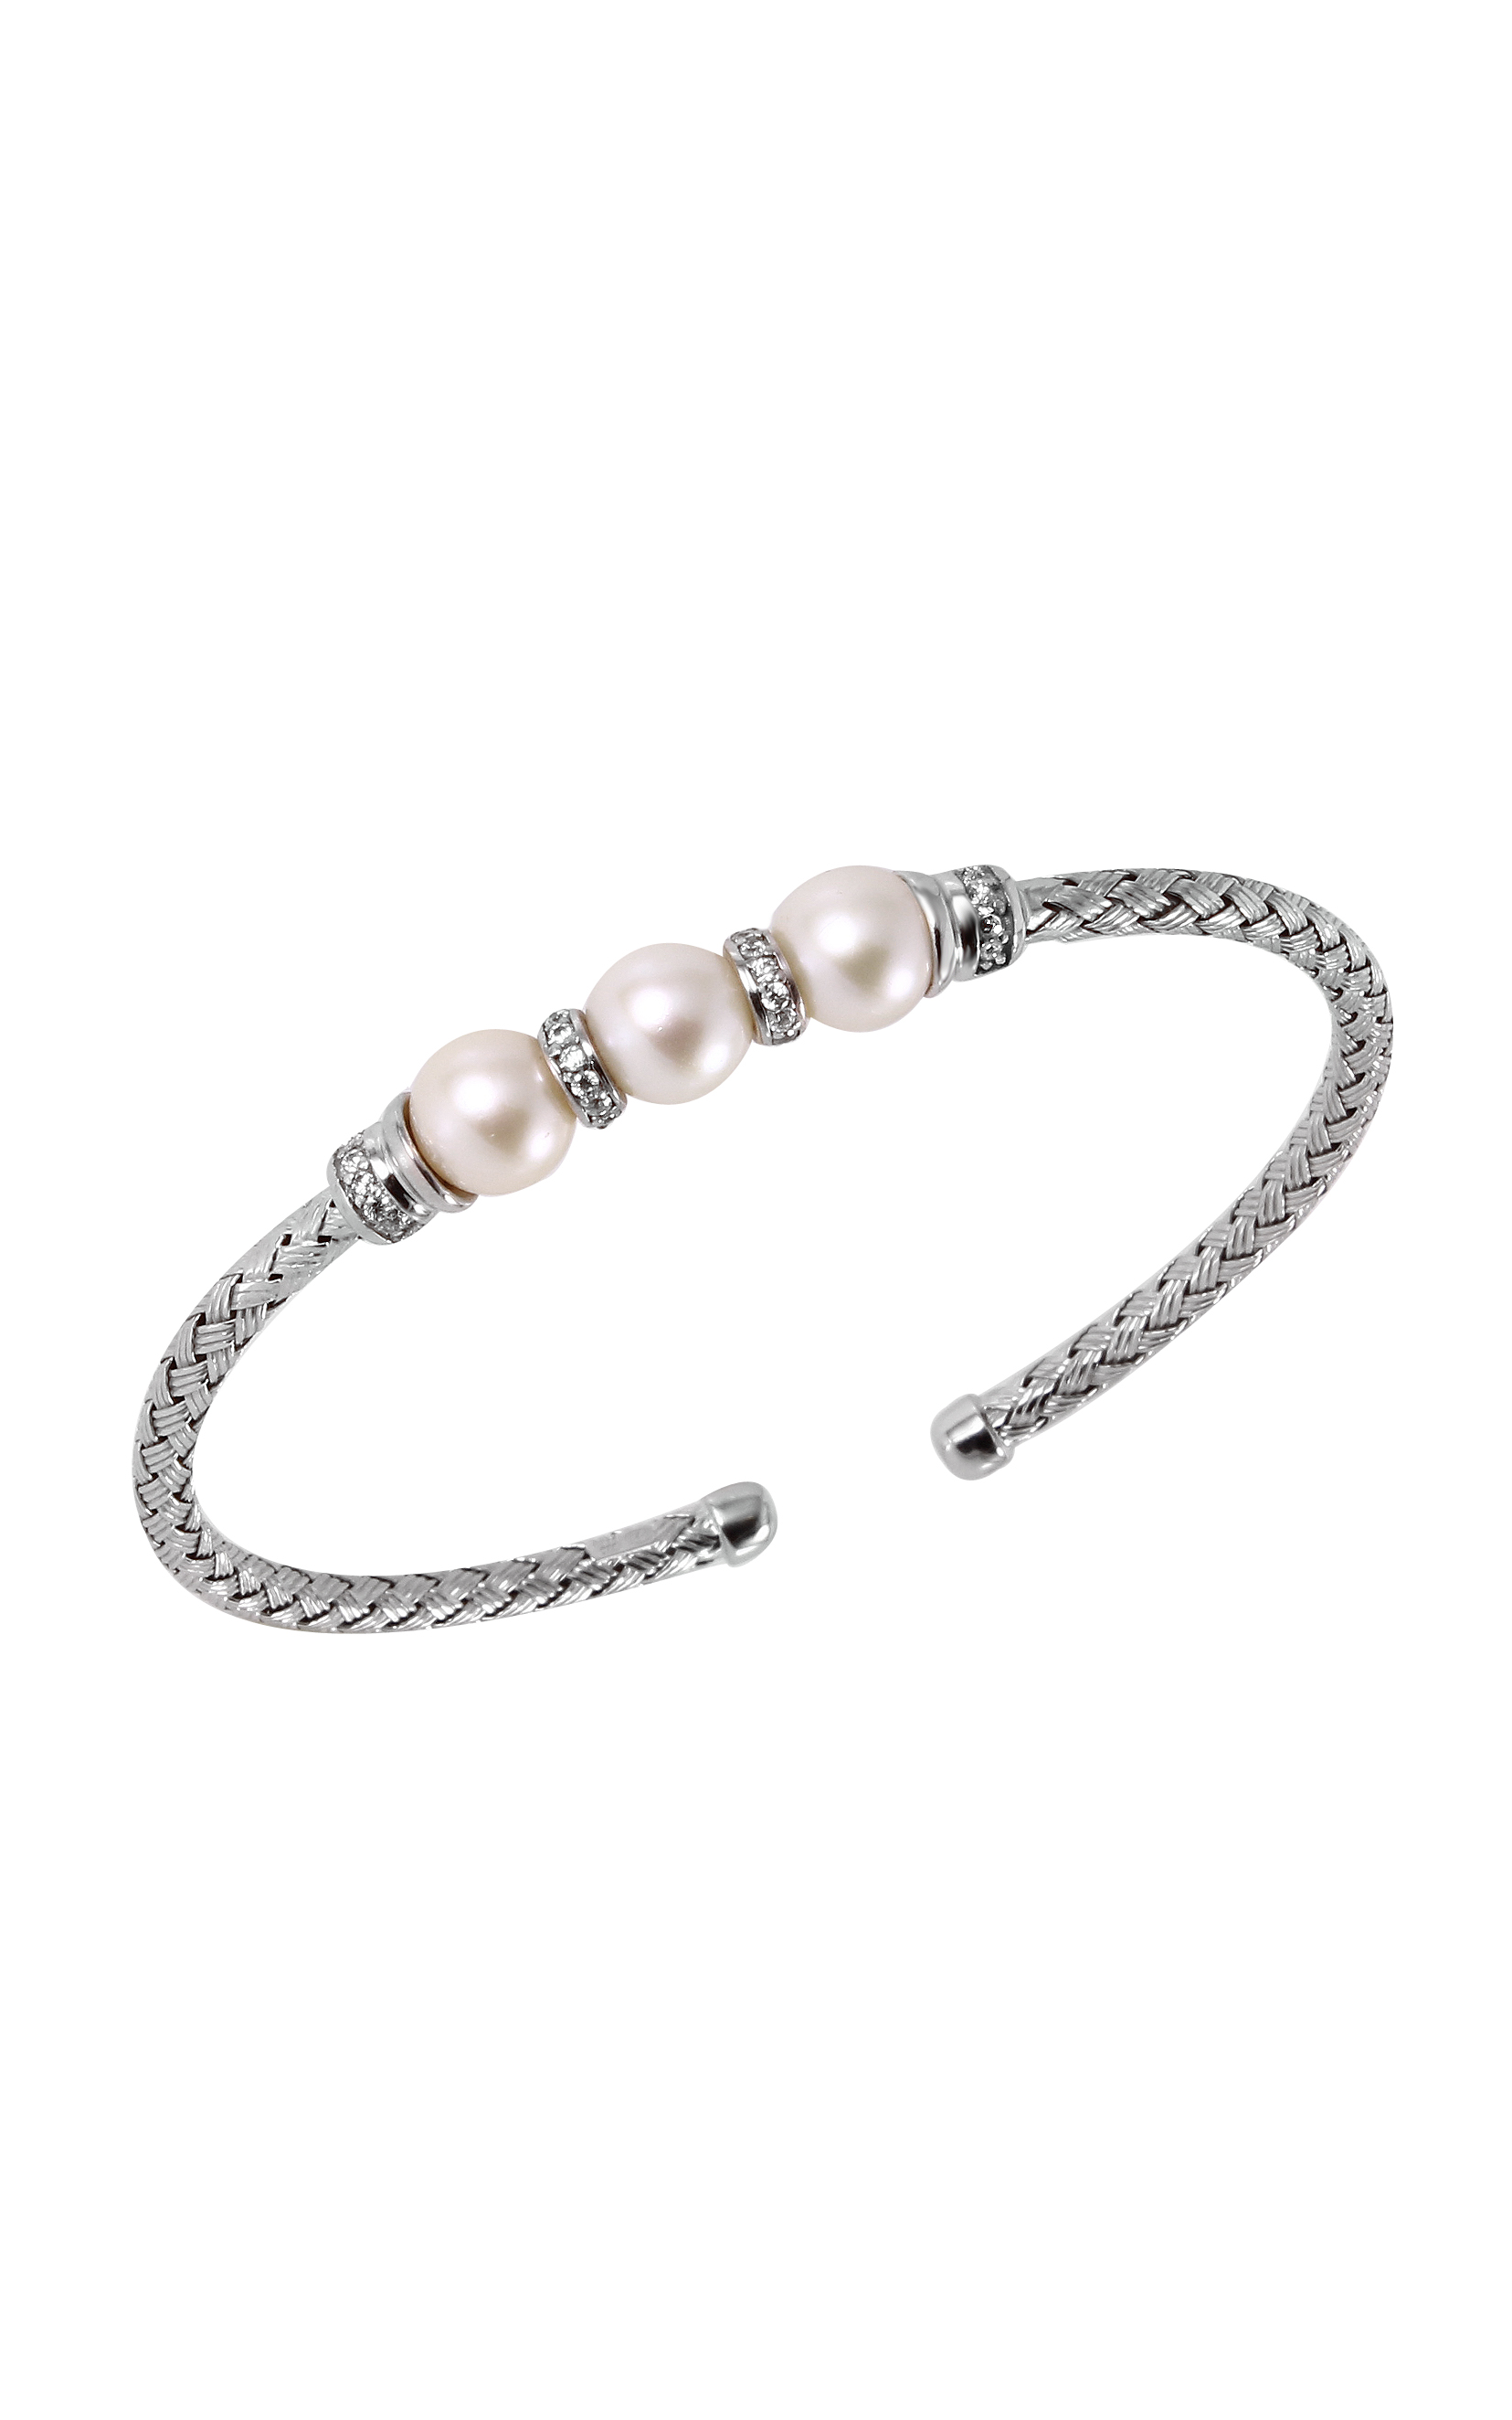 Charles Garnier Paolo Collection Bracelet MLC8185WPZ product image